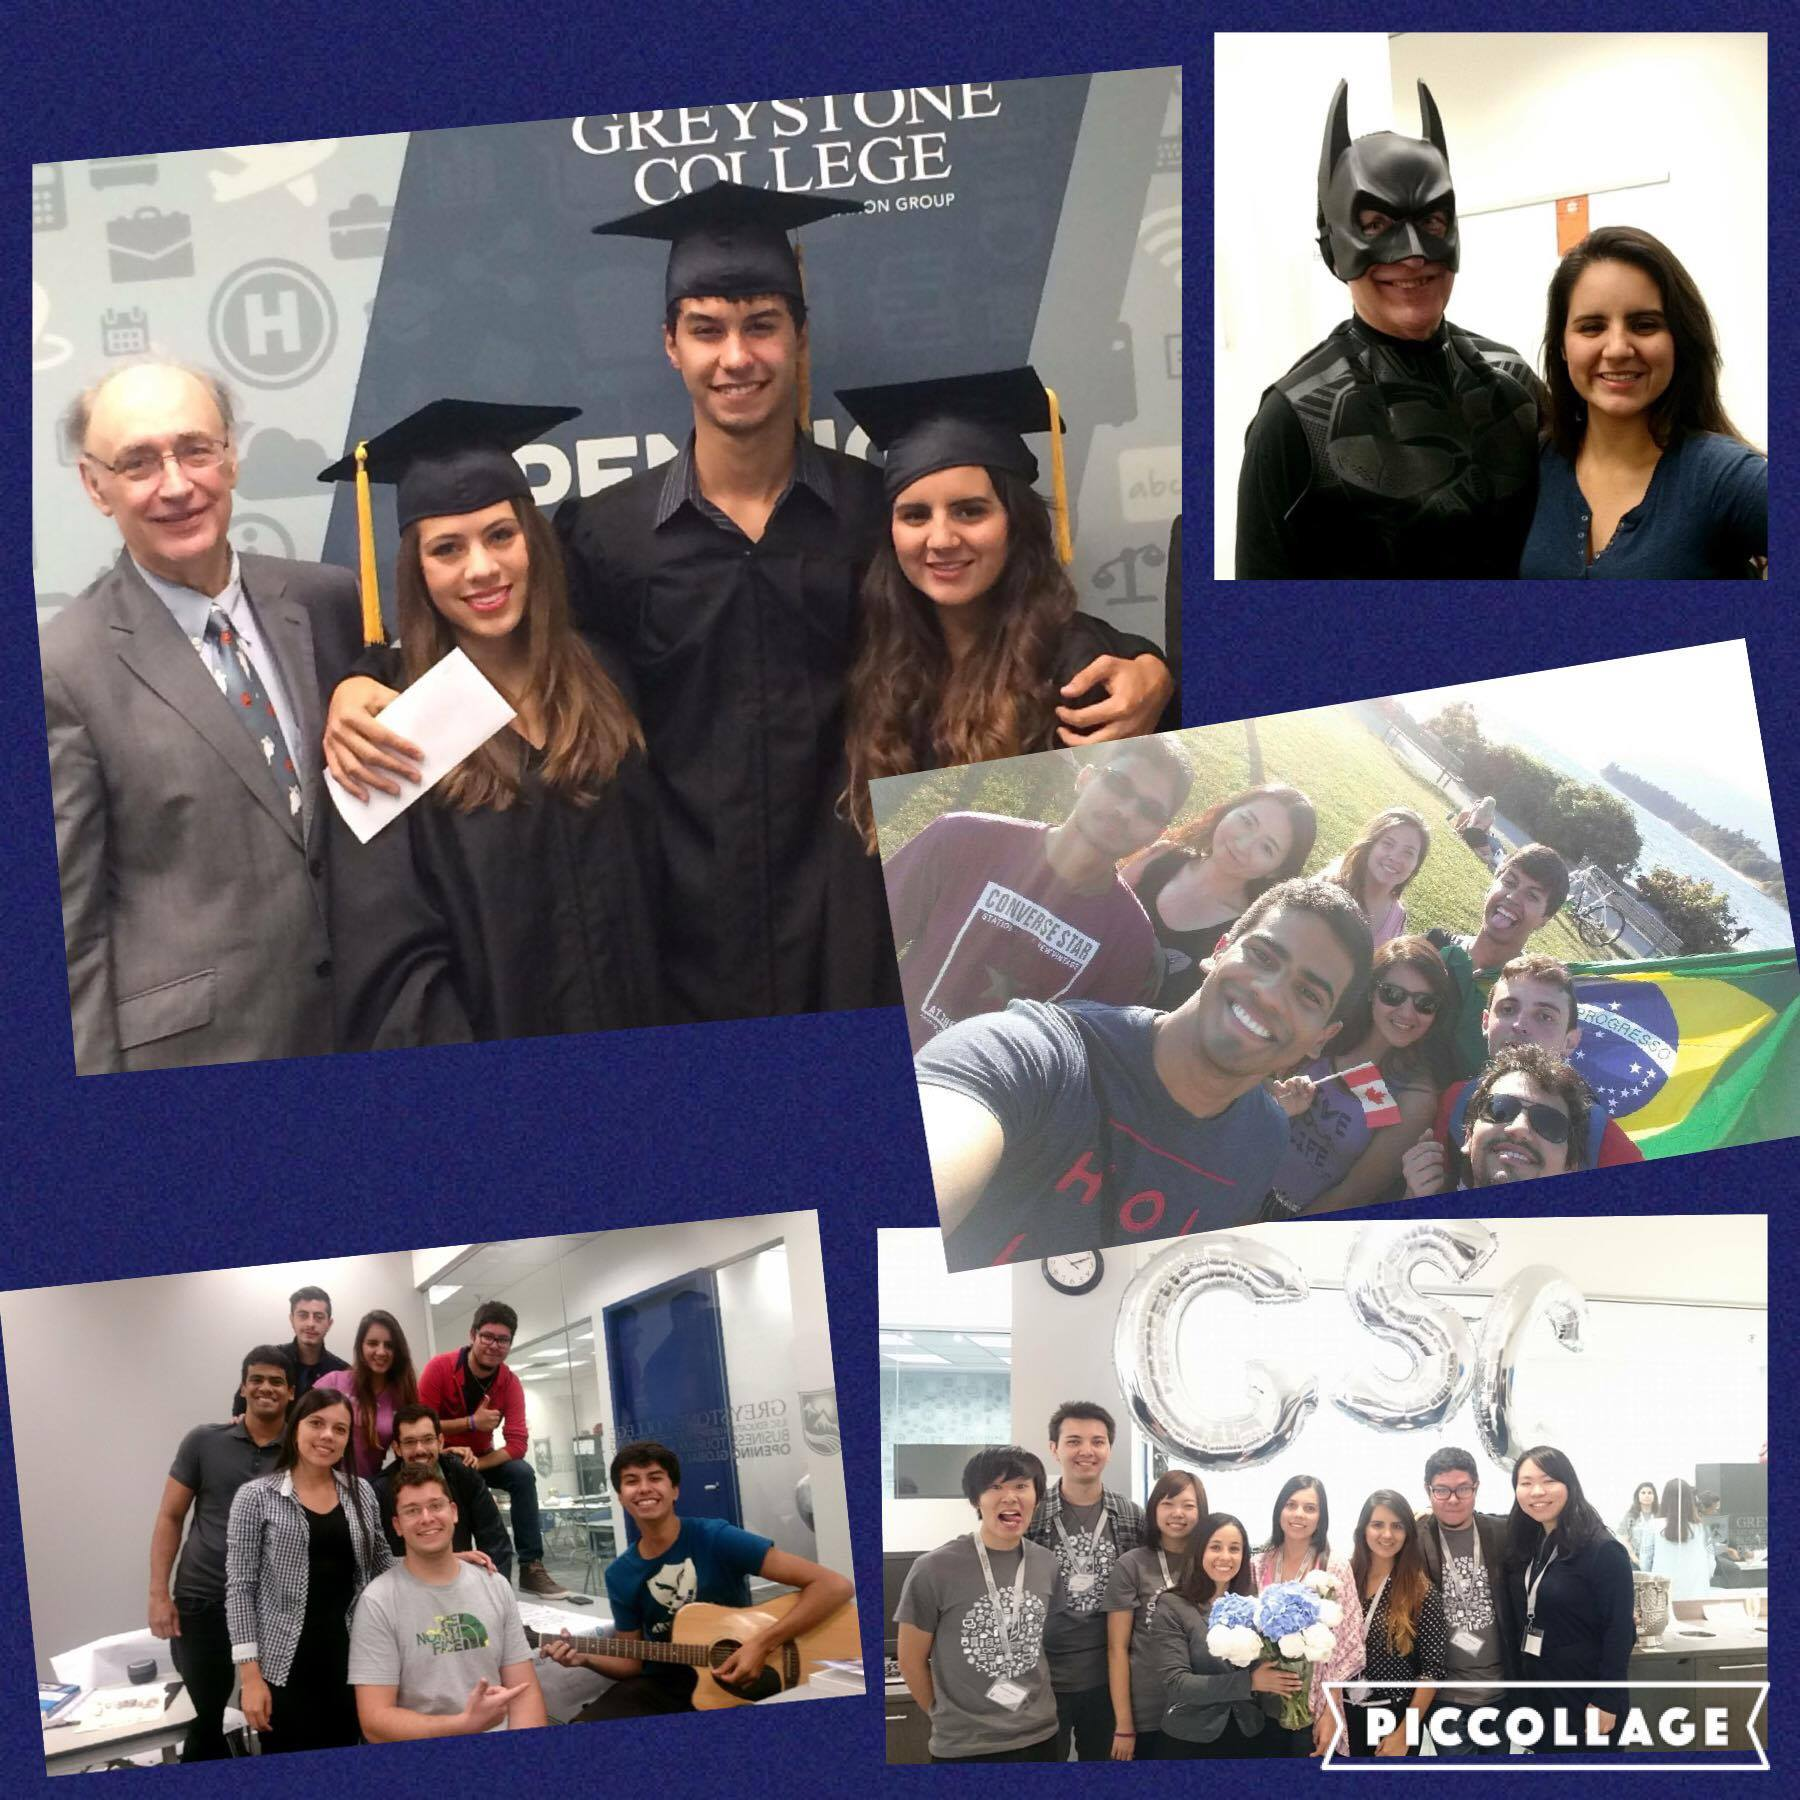 Michelle's time studying abroad with Greystone College